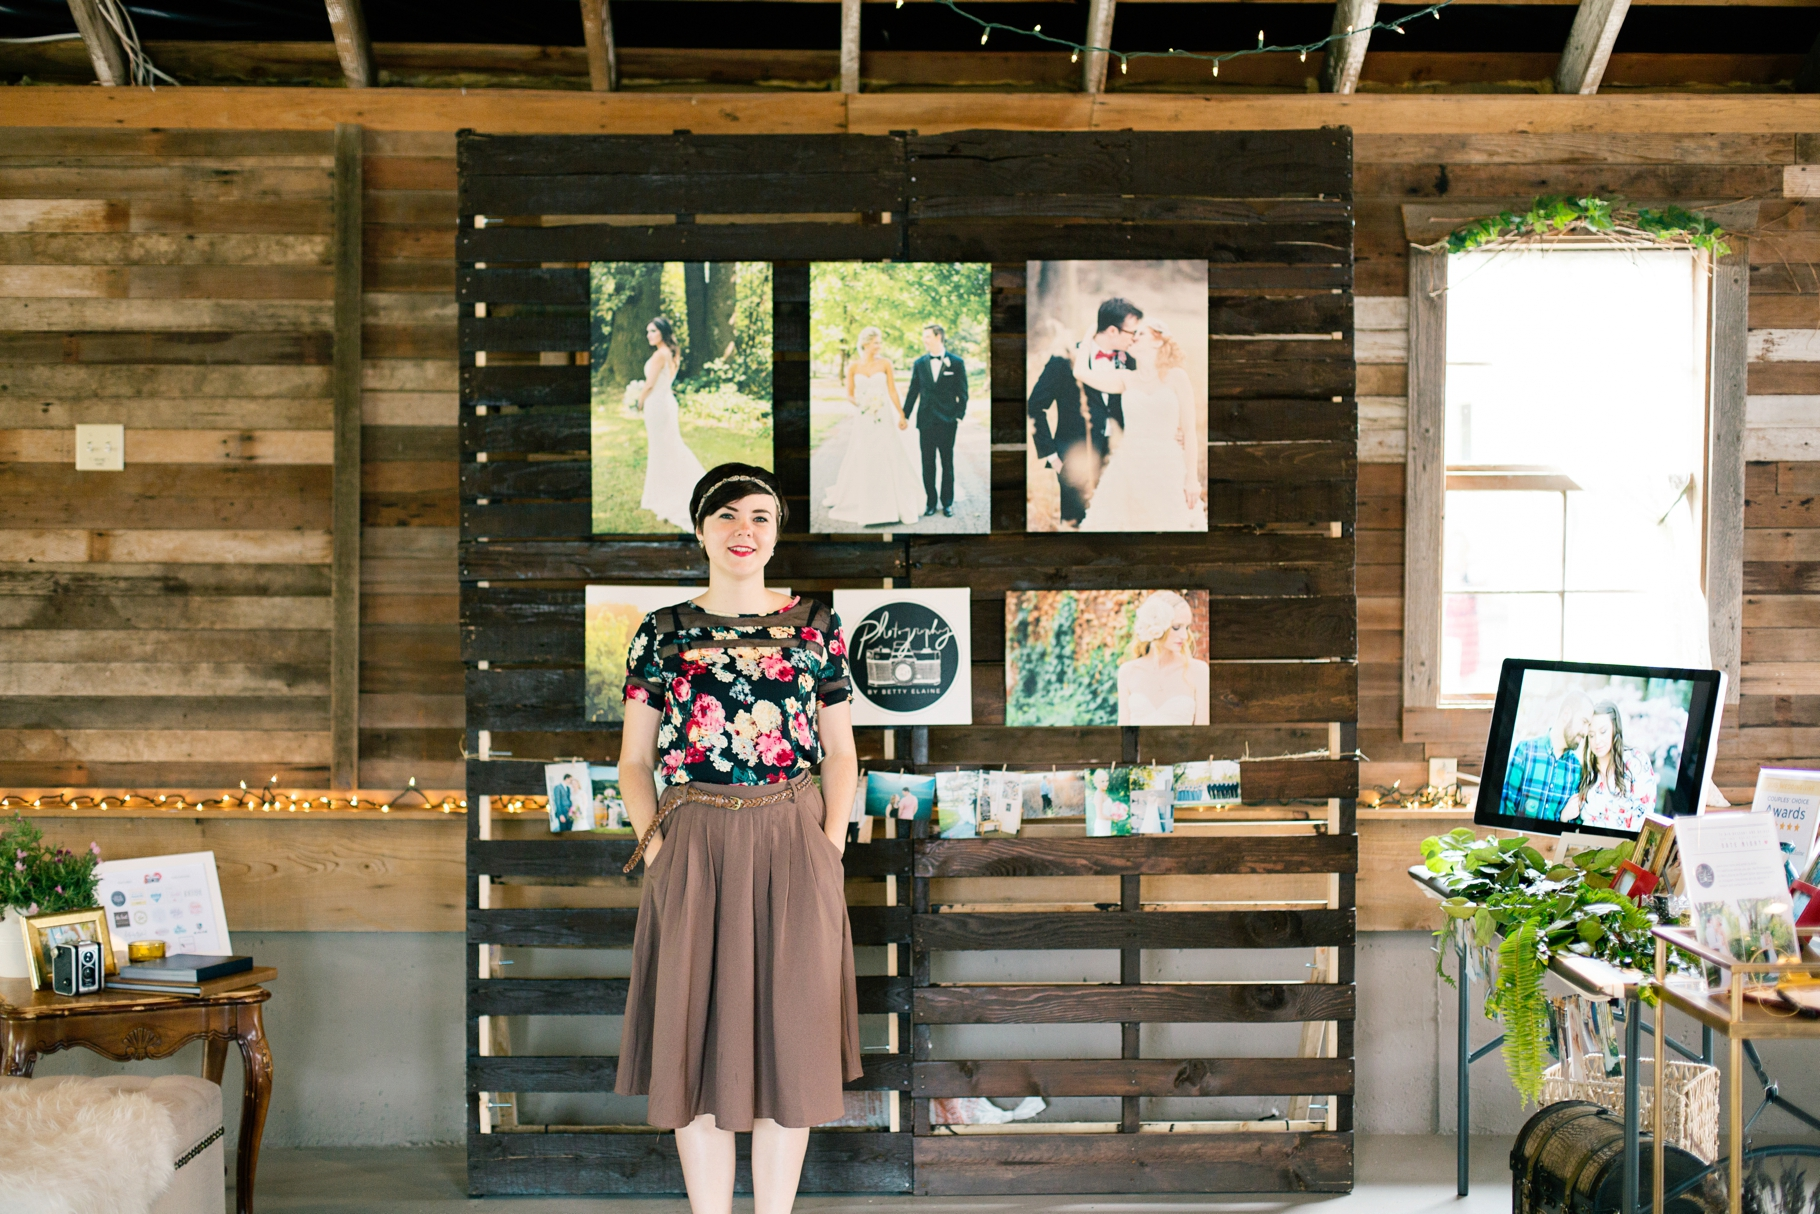 16-Craven-Farm-Pallet-Gallery-Display-Snohomish-Wedding-Tour-Seattle-Photographer-Photography-by-Betty-Elaine